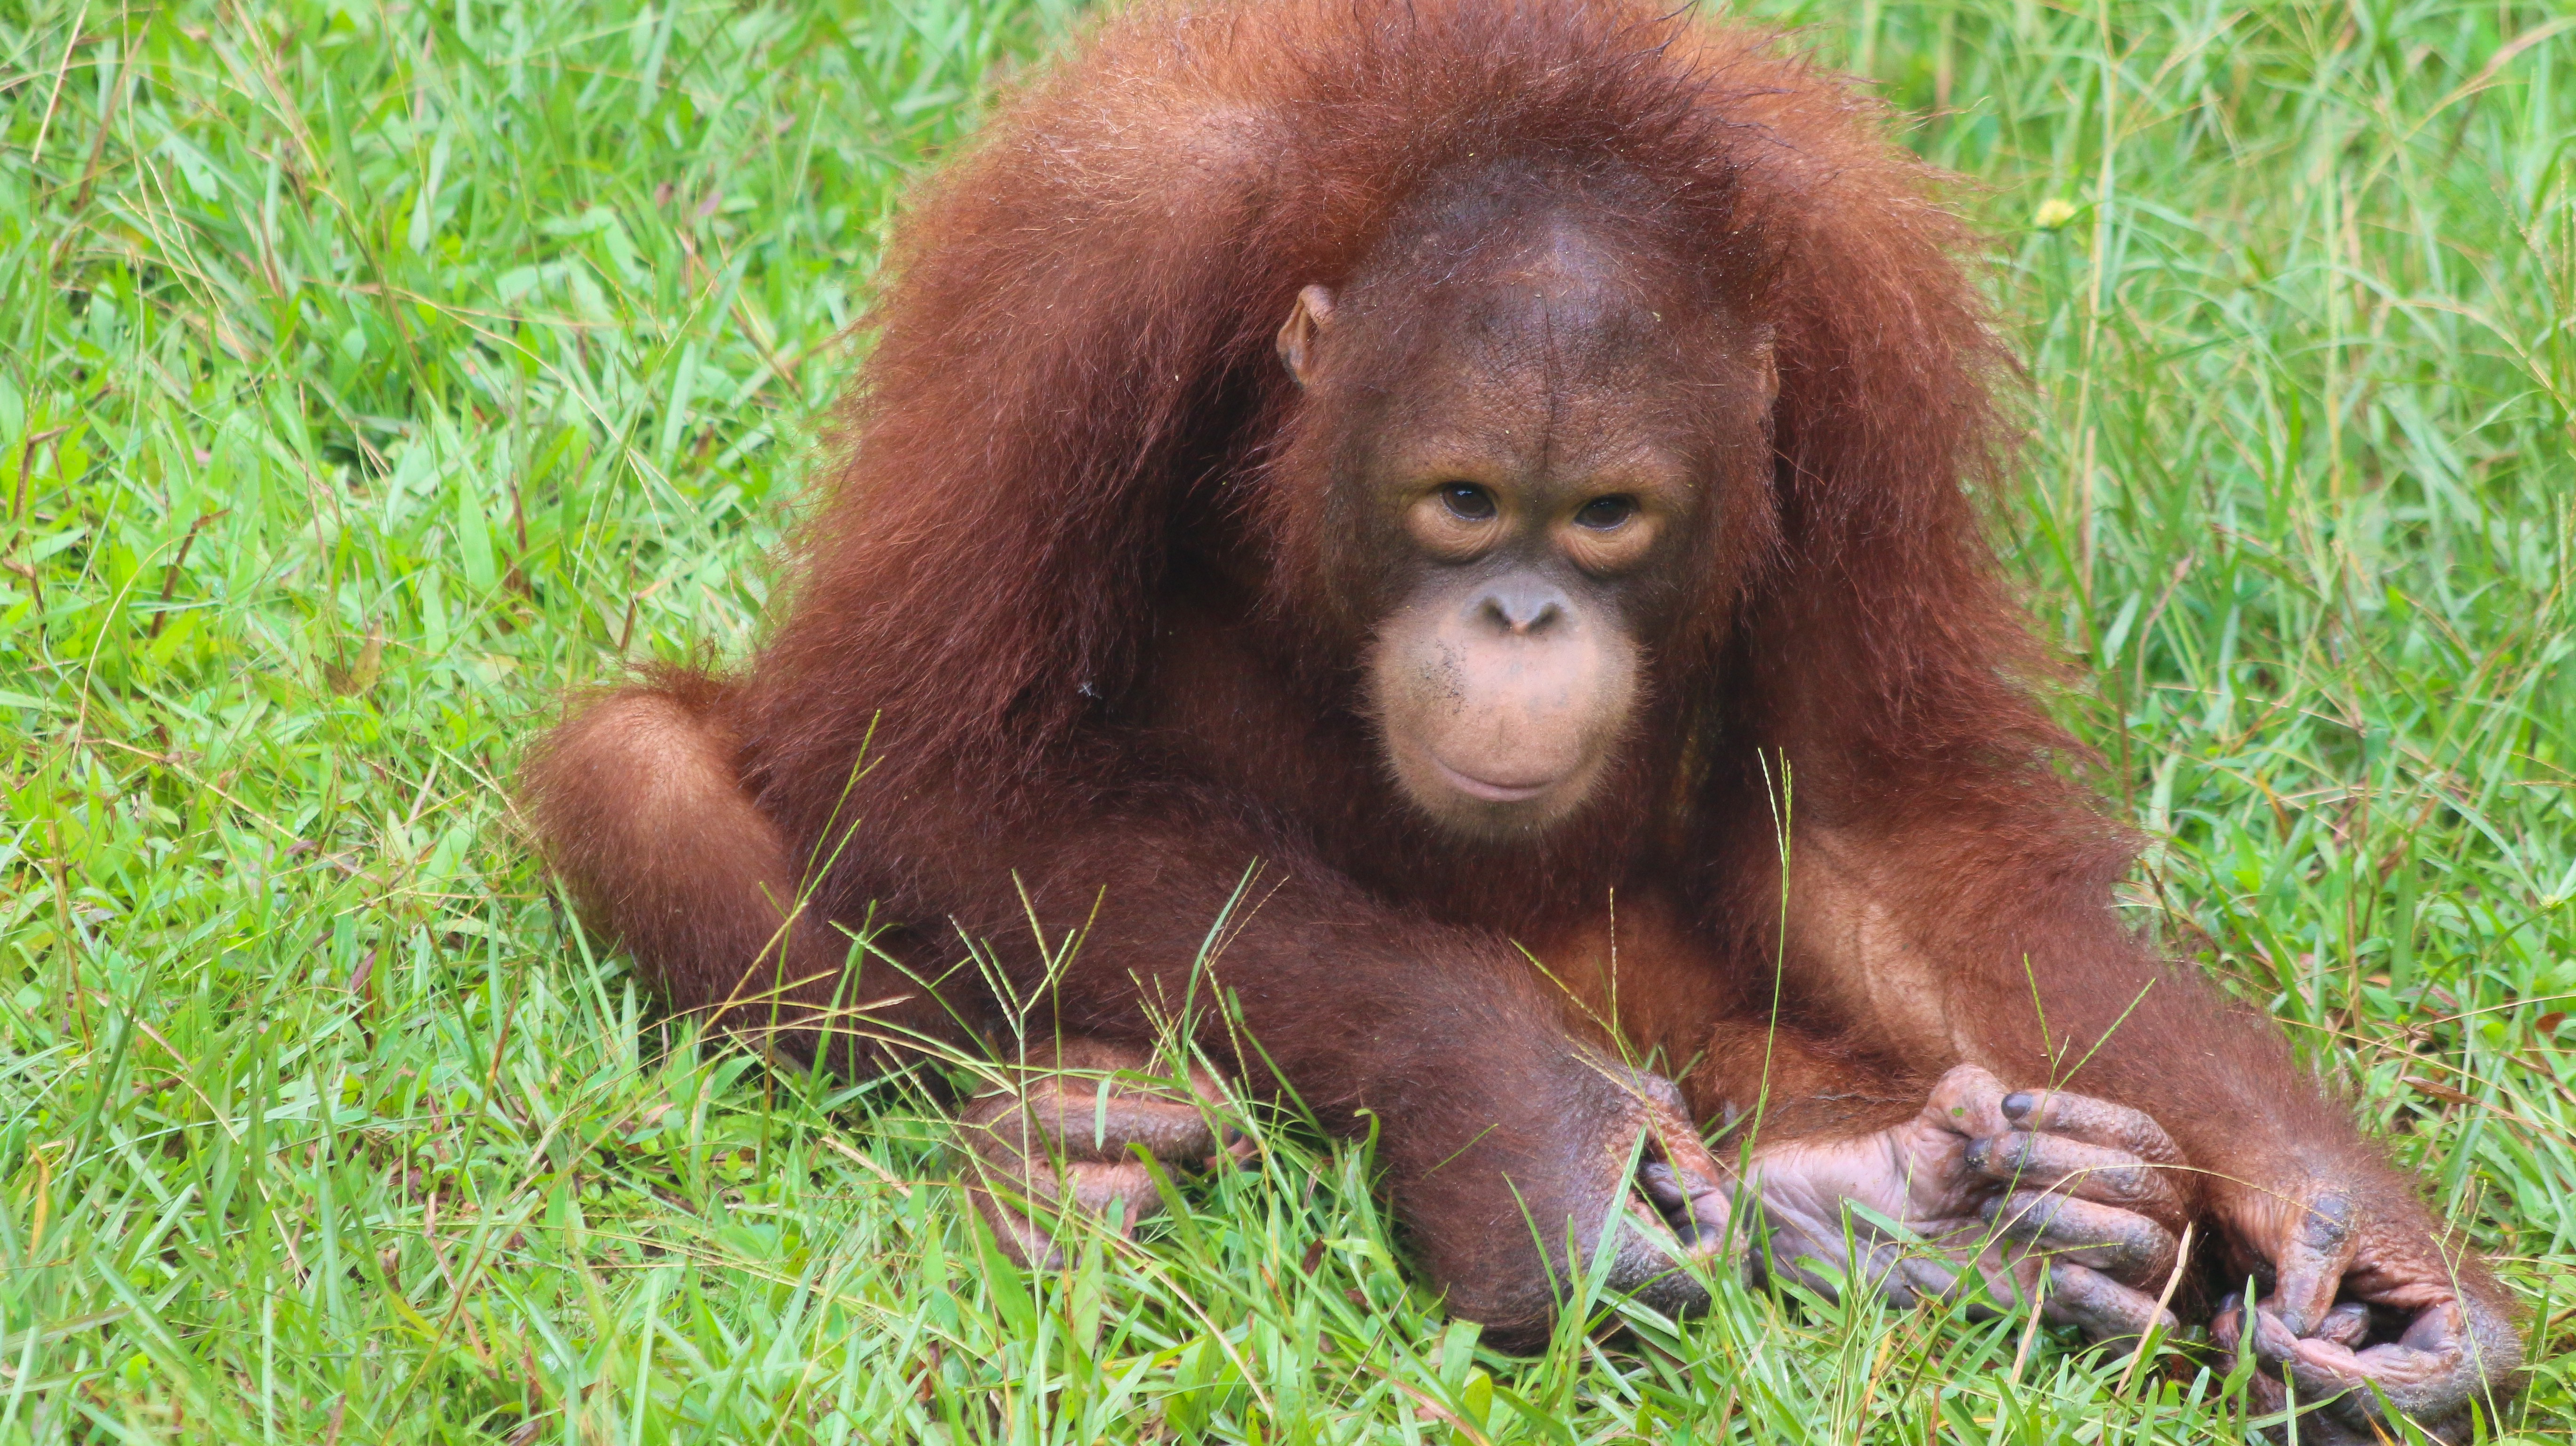 matang wildlife reserve, orangutans in rehabilitation